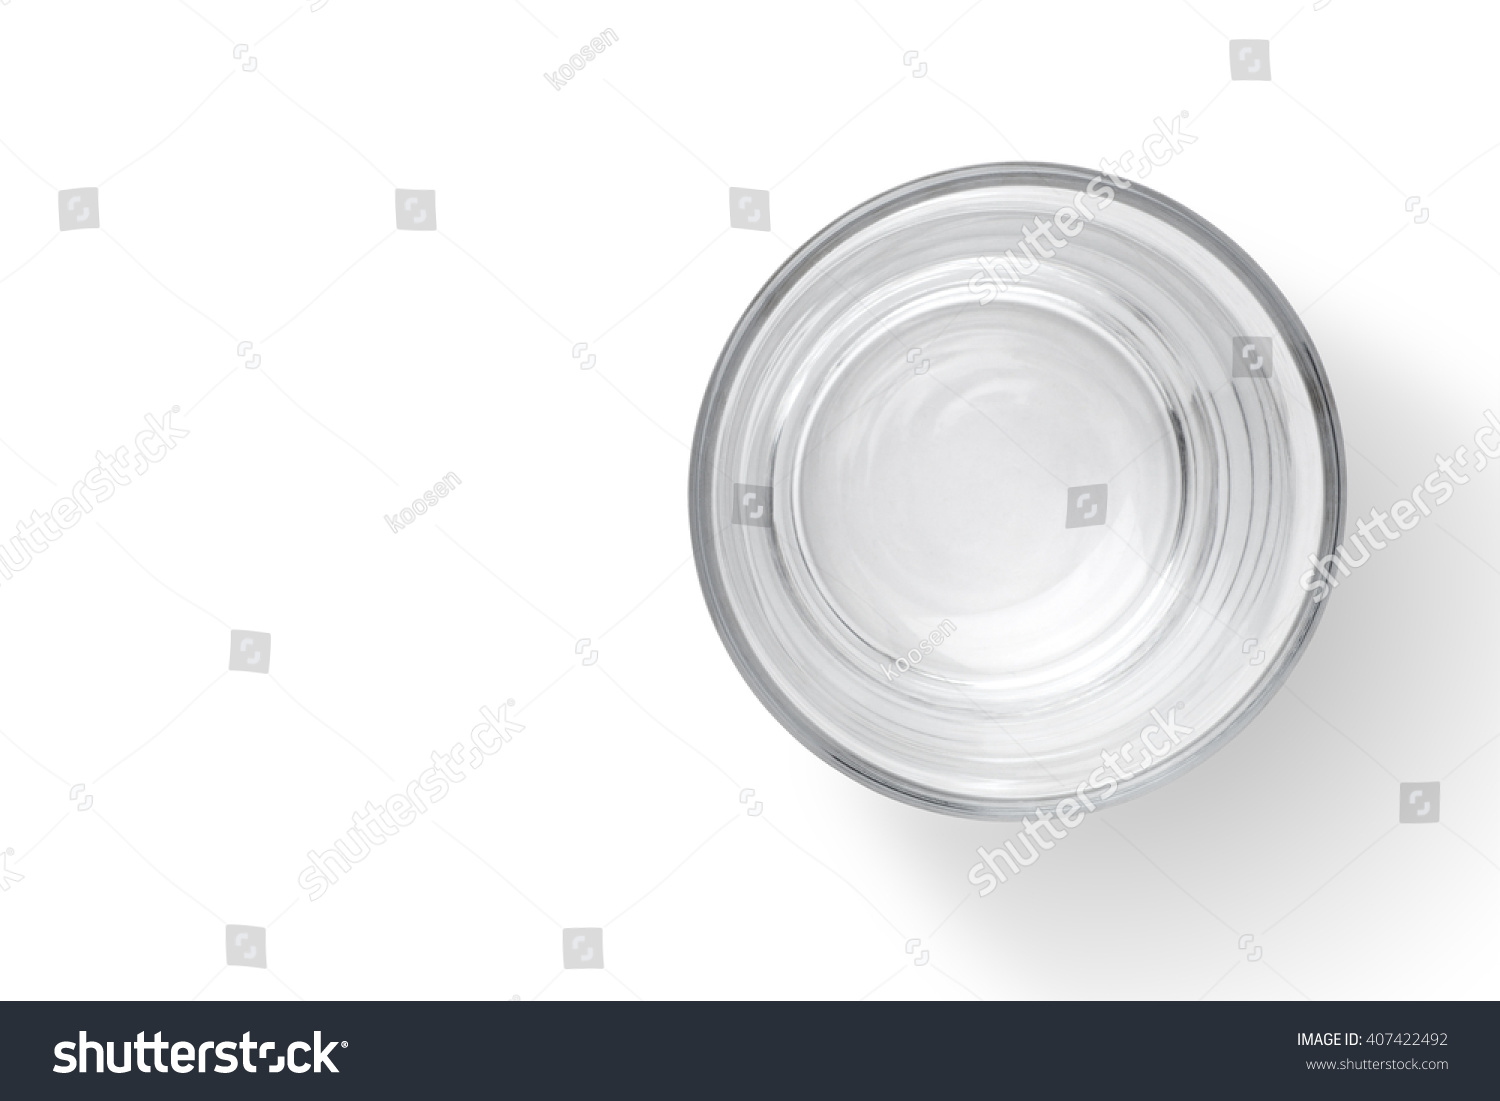 Empty Cup Top : Top view empty glass cup on stock photo